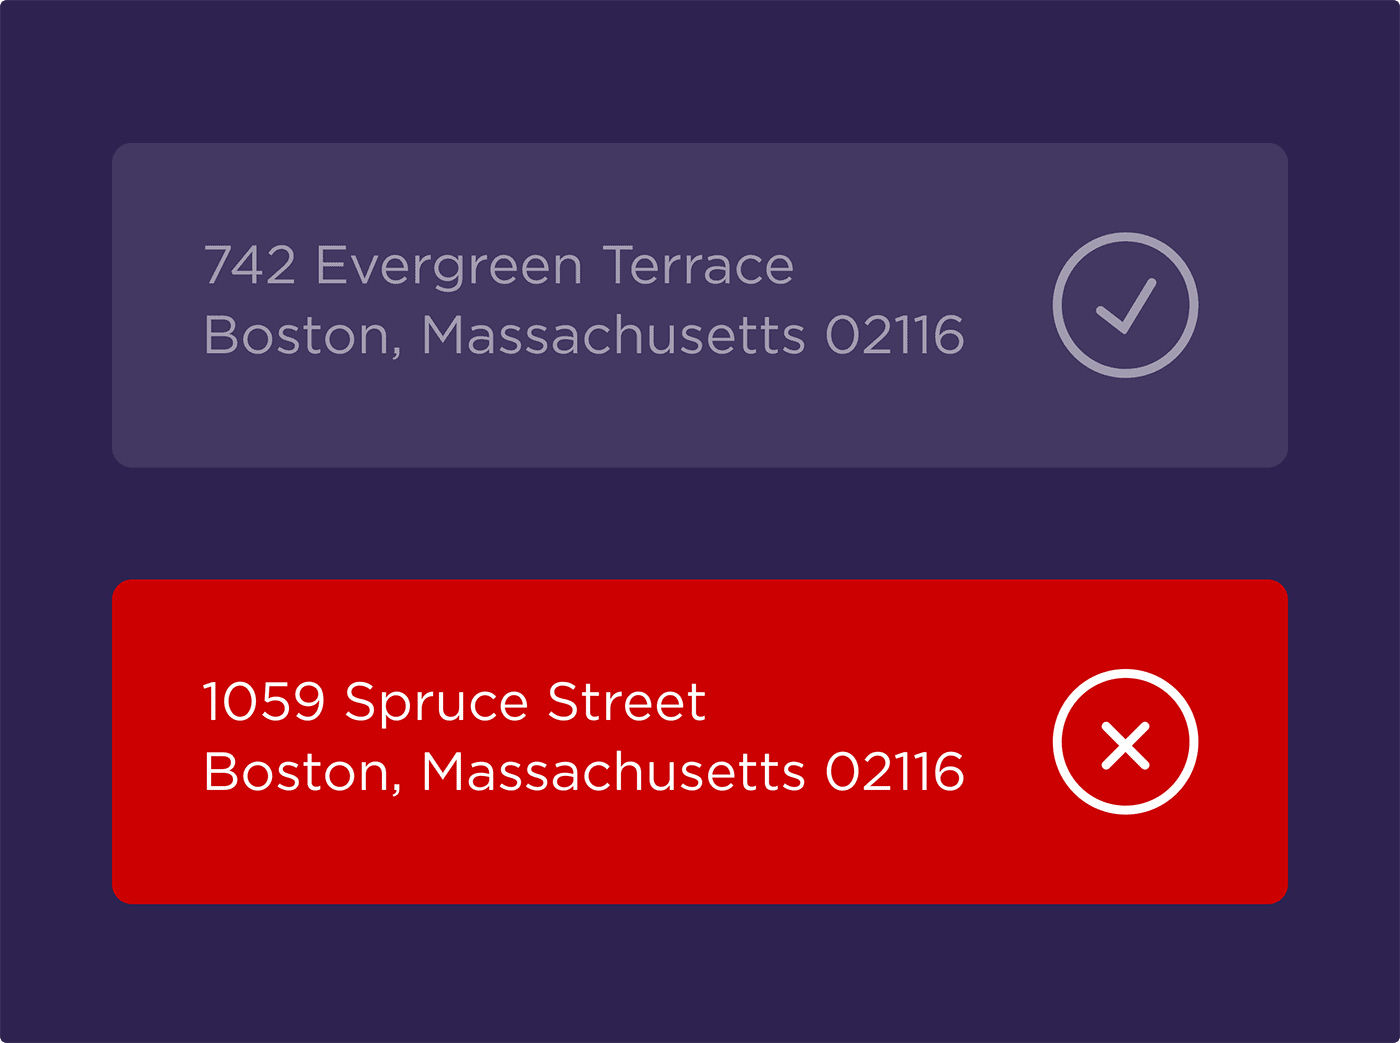 Addresses that do not match will be flagged by Google